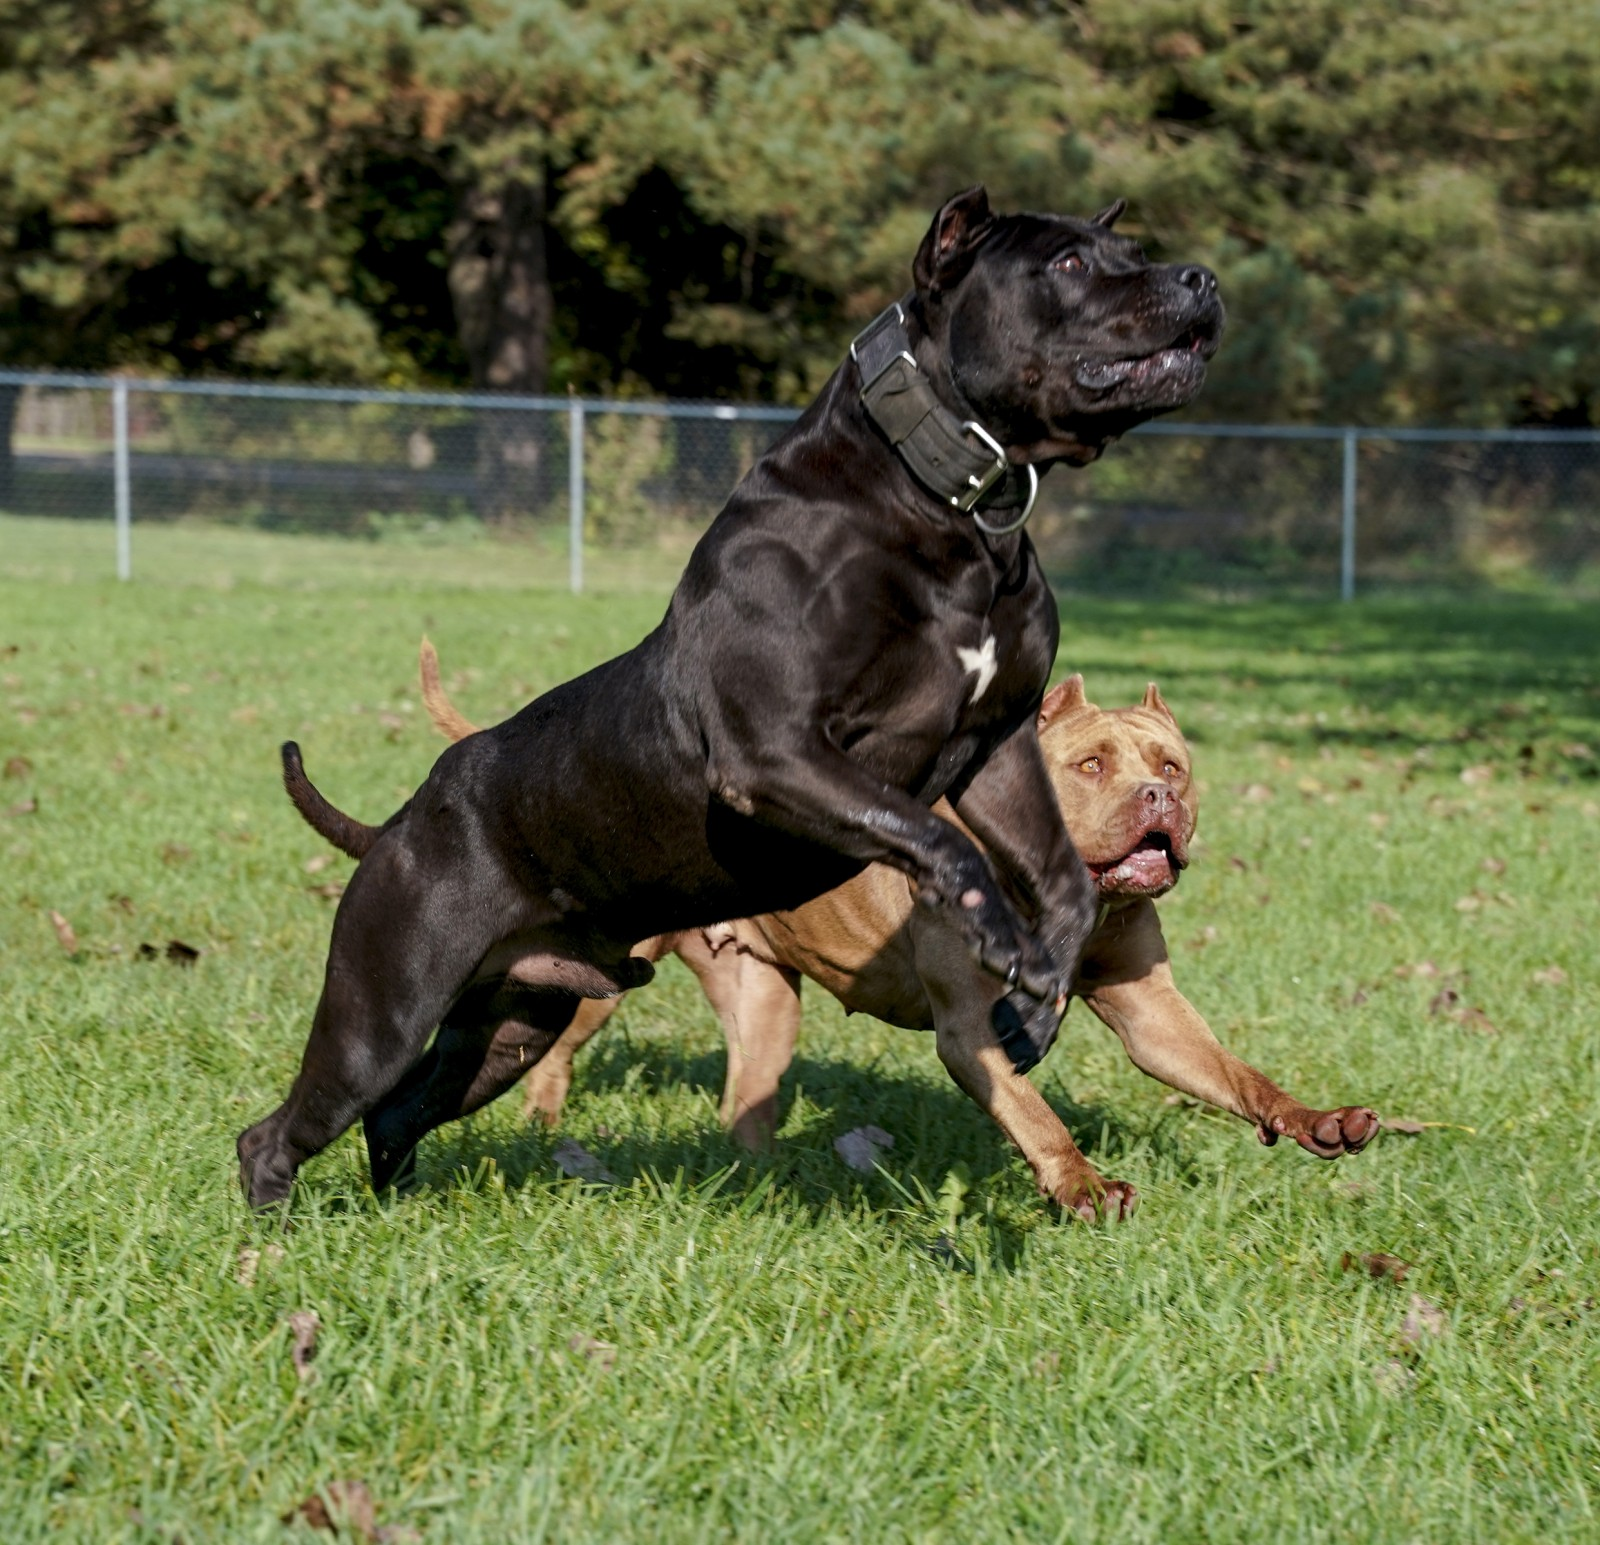 Batman, AKA Bruce Wayne, an athletic, muscular, XL black pit-bull lunges for and object out of site next to Sumatra, a huge red female pit bull.